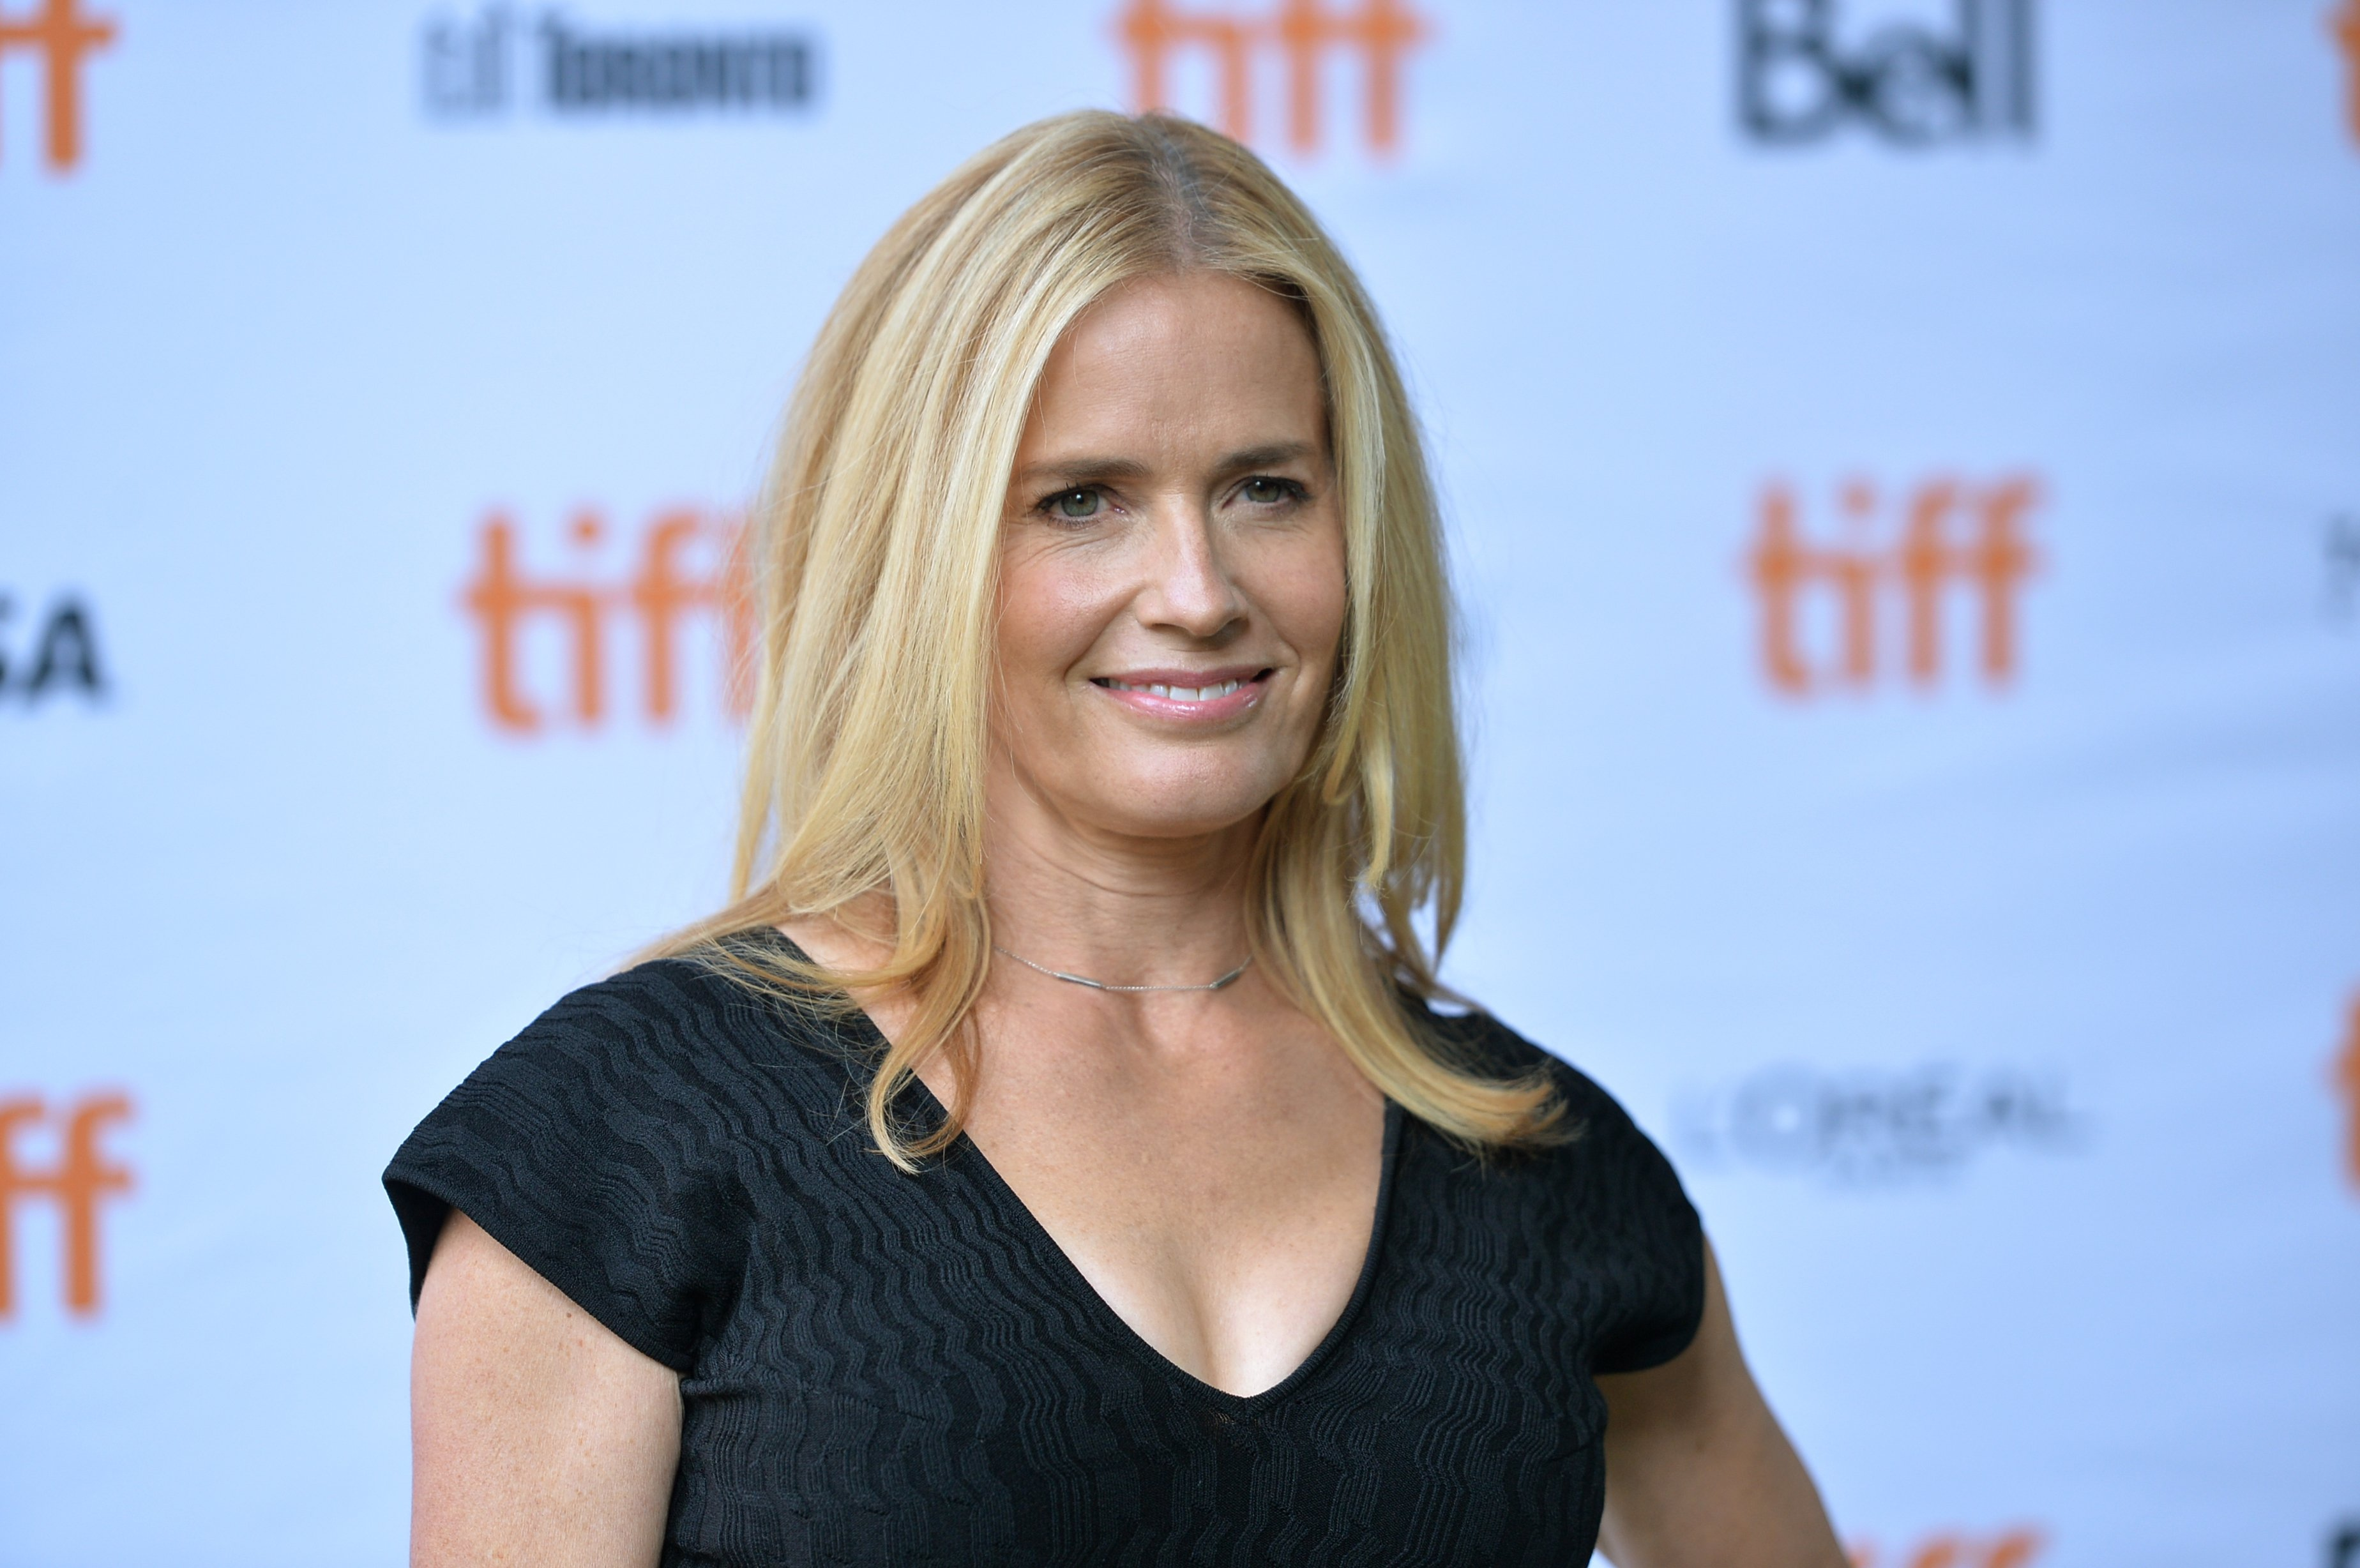 """Elisabeth Shue attends the """"Battle of the Sexes"""" premiere on September 10, 2017, in Toronto, Canada. 